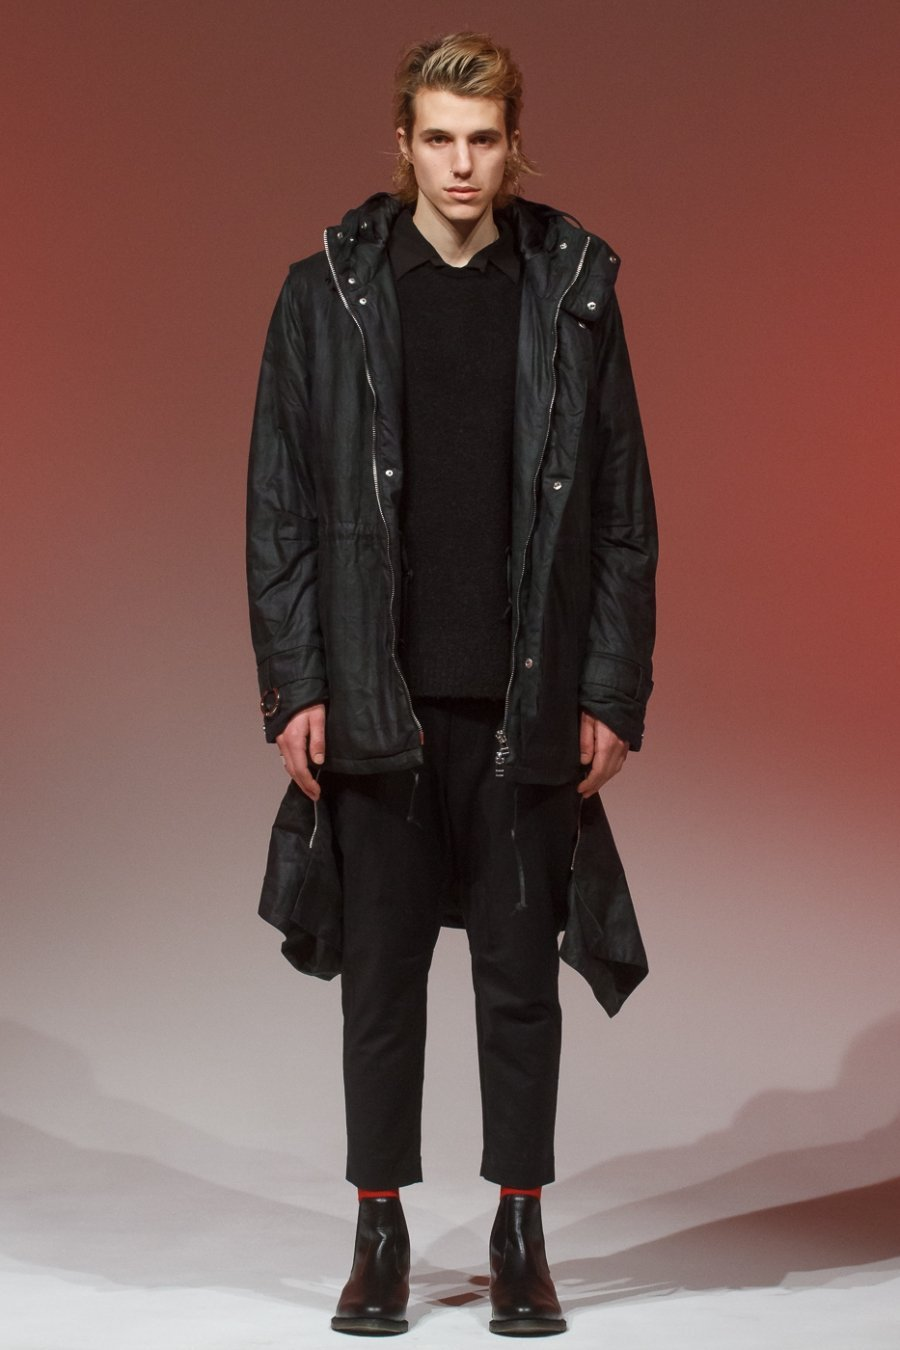 Chapter-AW16-NYMD-Presentation_Low-Res_Edited-010-900x1350.jpg